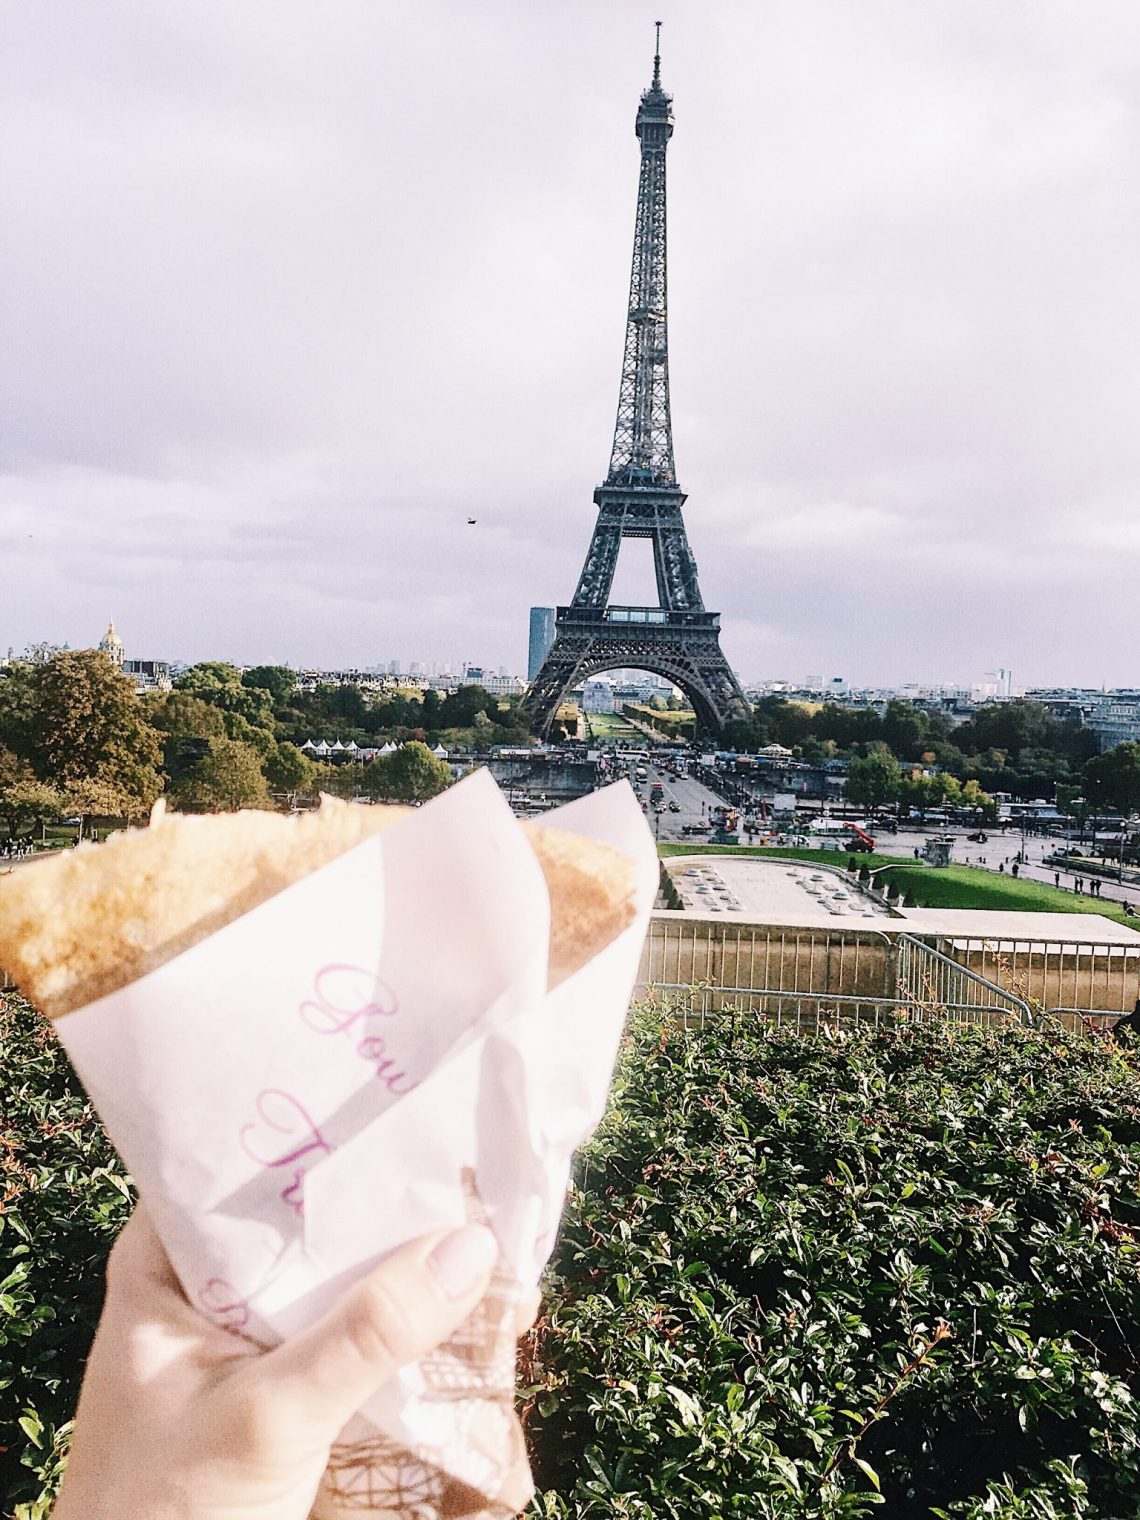 nutella crepe and eiffel tower